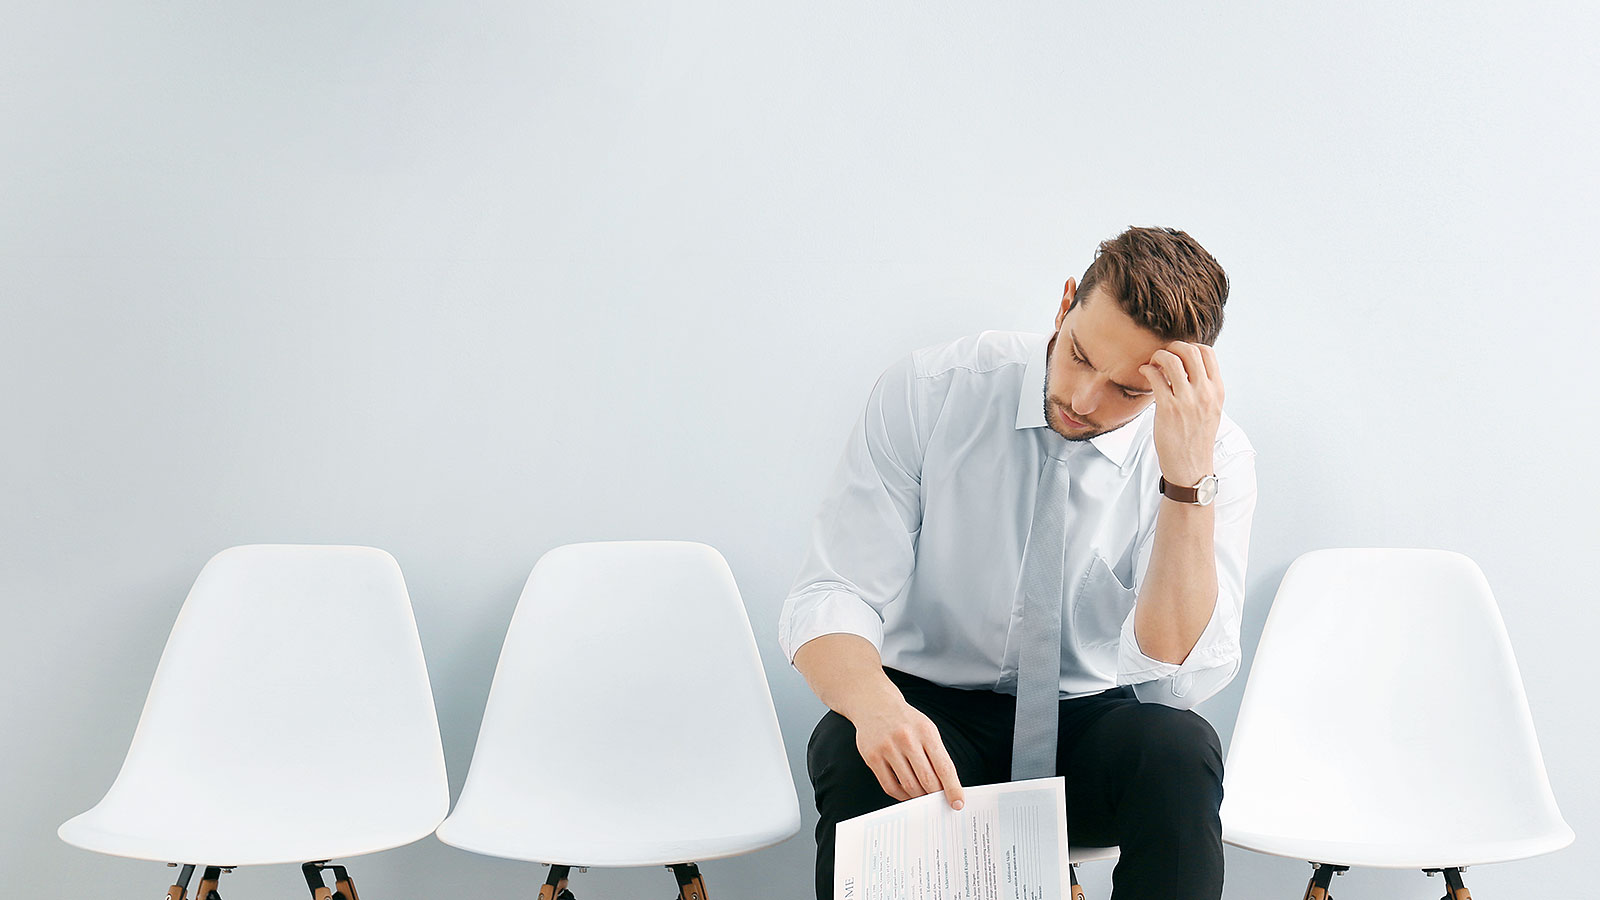 Unemployed isn't unqualified: 3 stigmas that scare recruiters (and how to squash the bias)